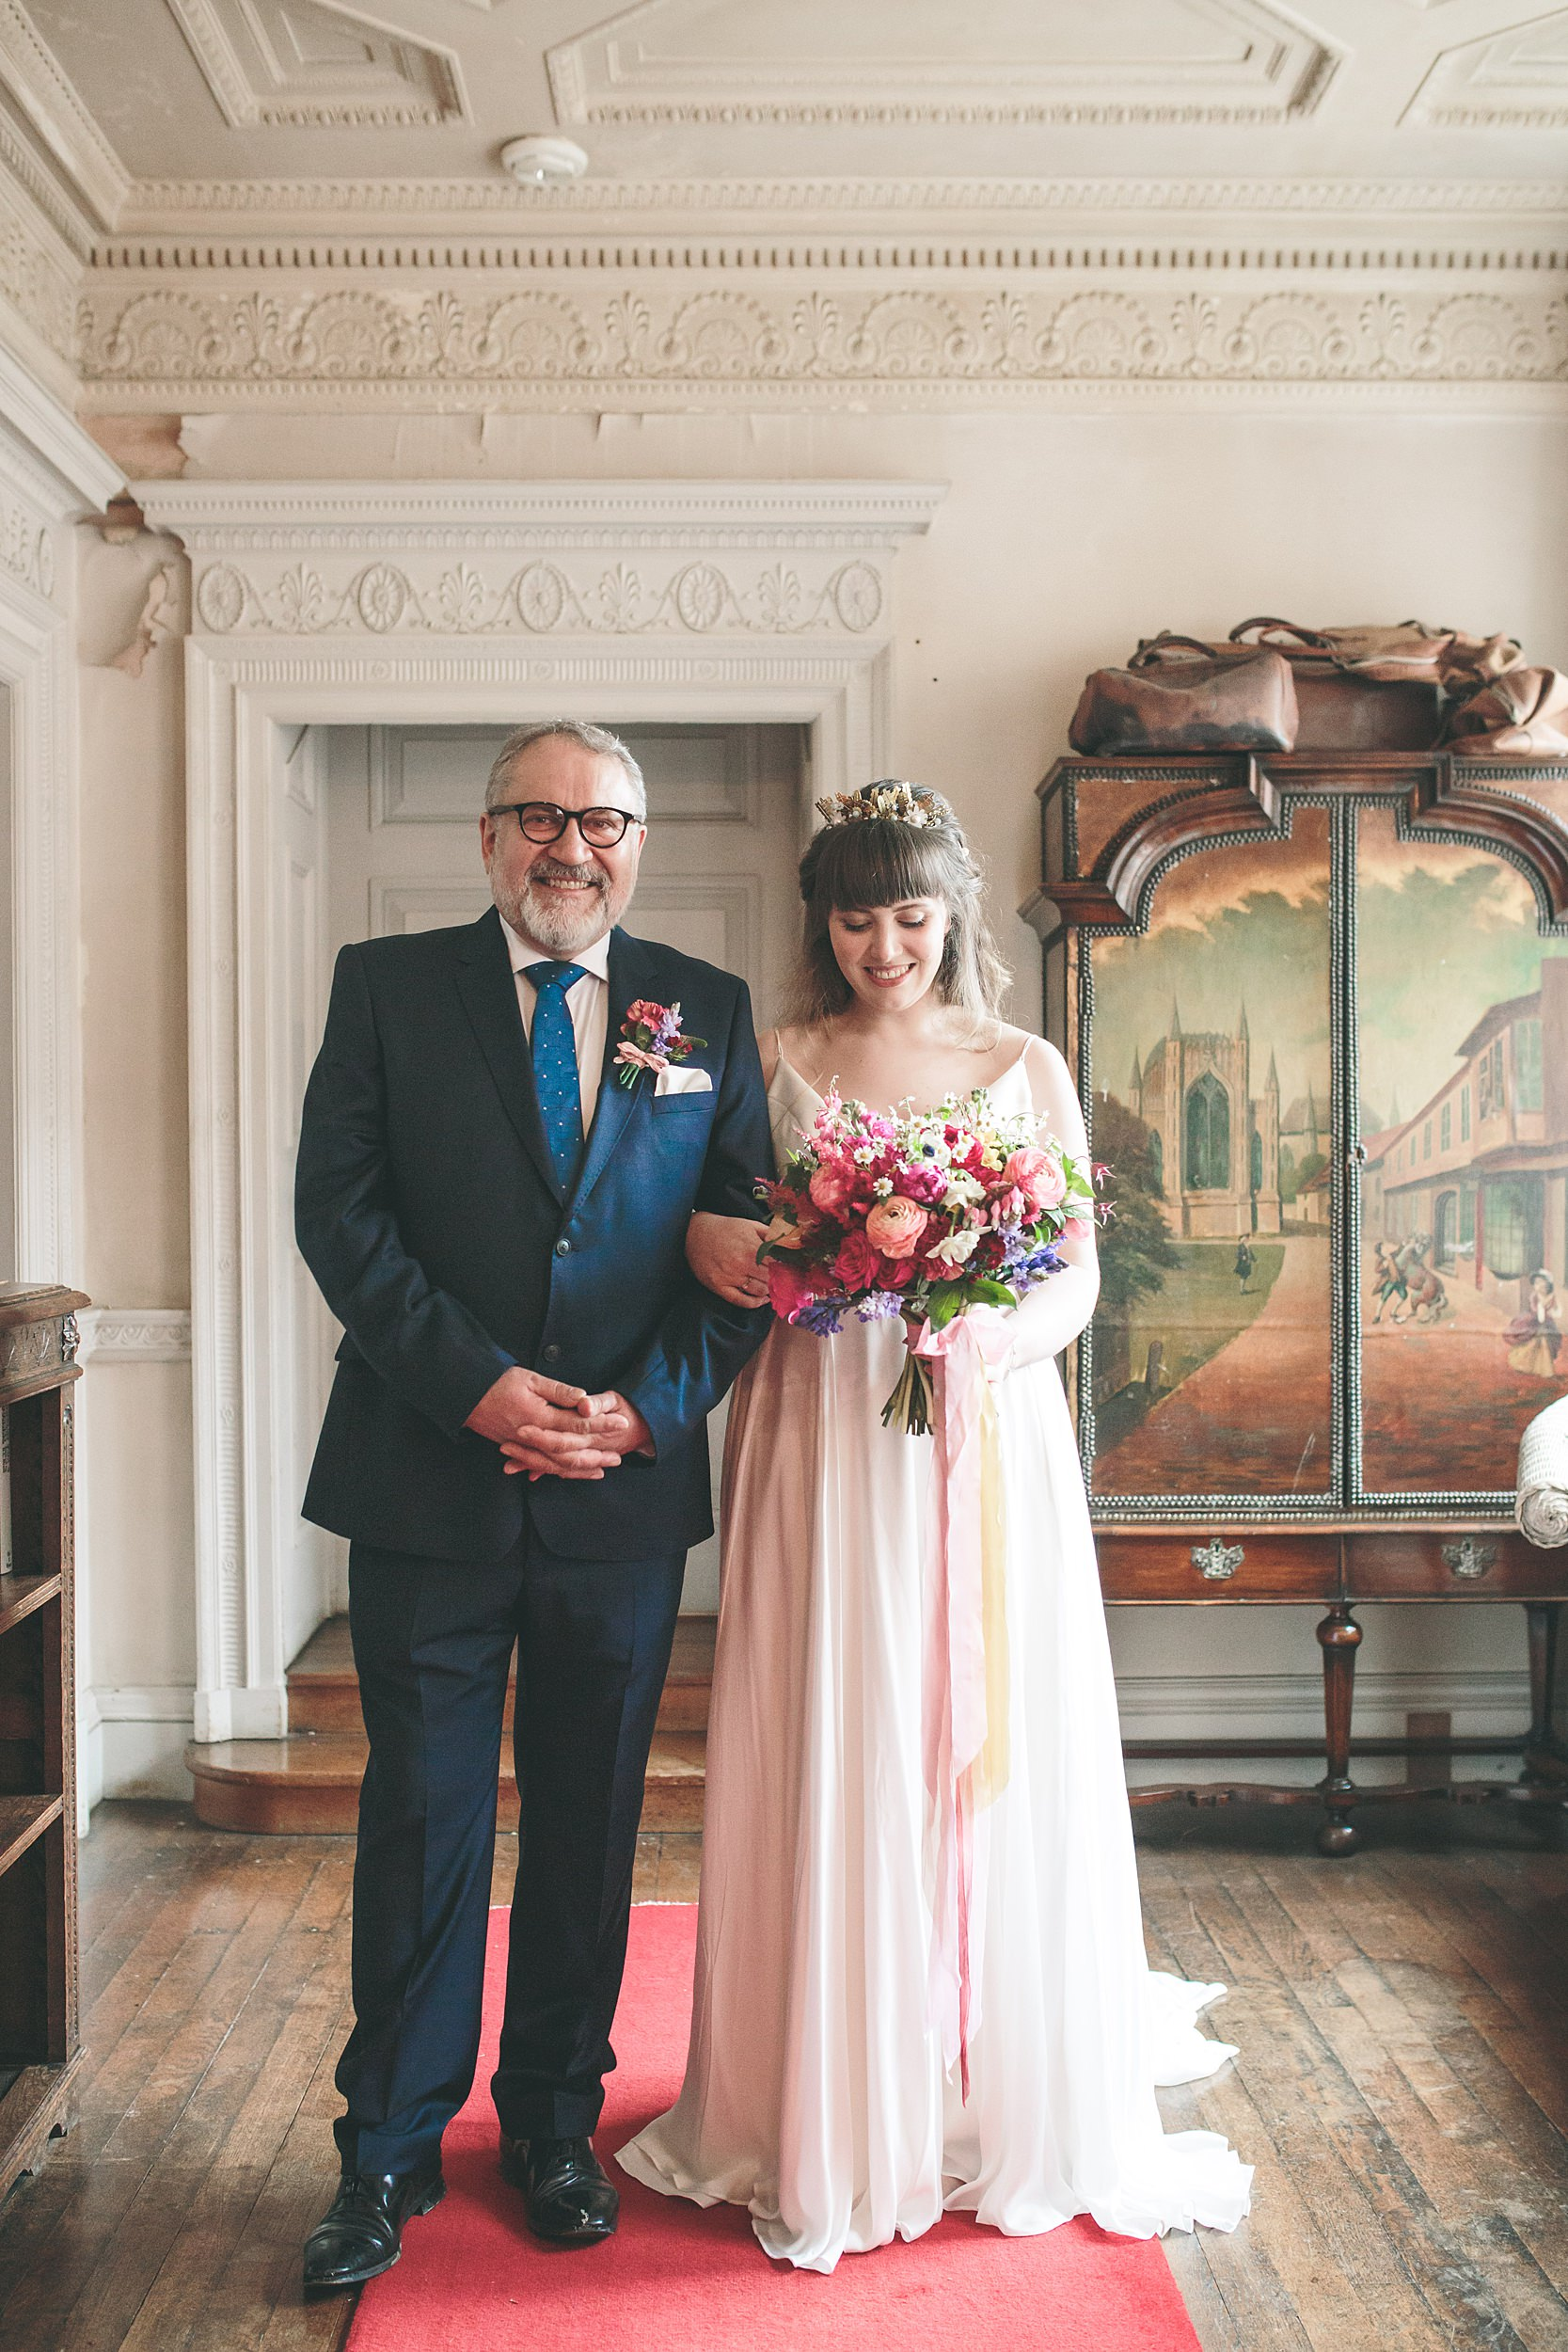 Walcot Hall Wes Anderson inspired wedding photography